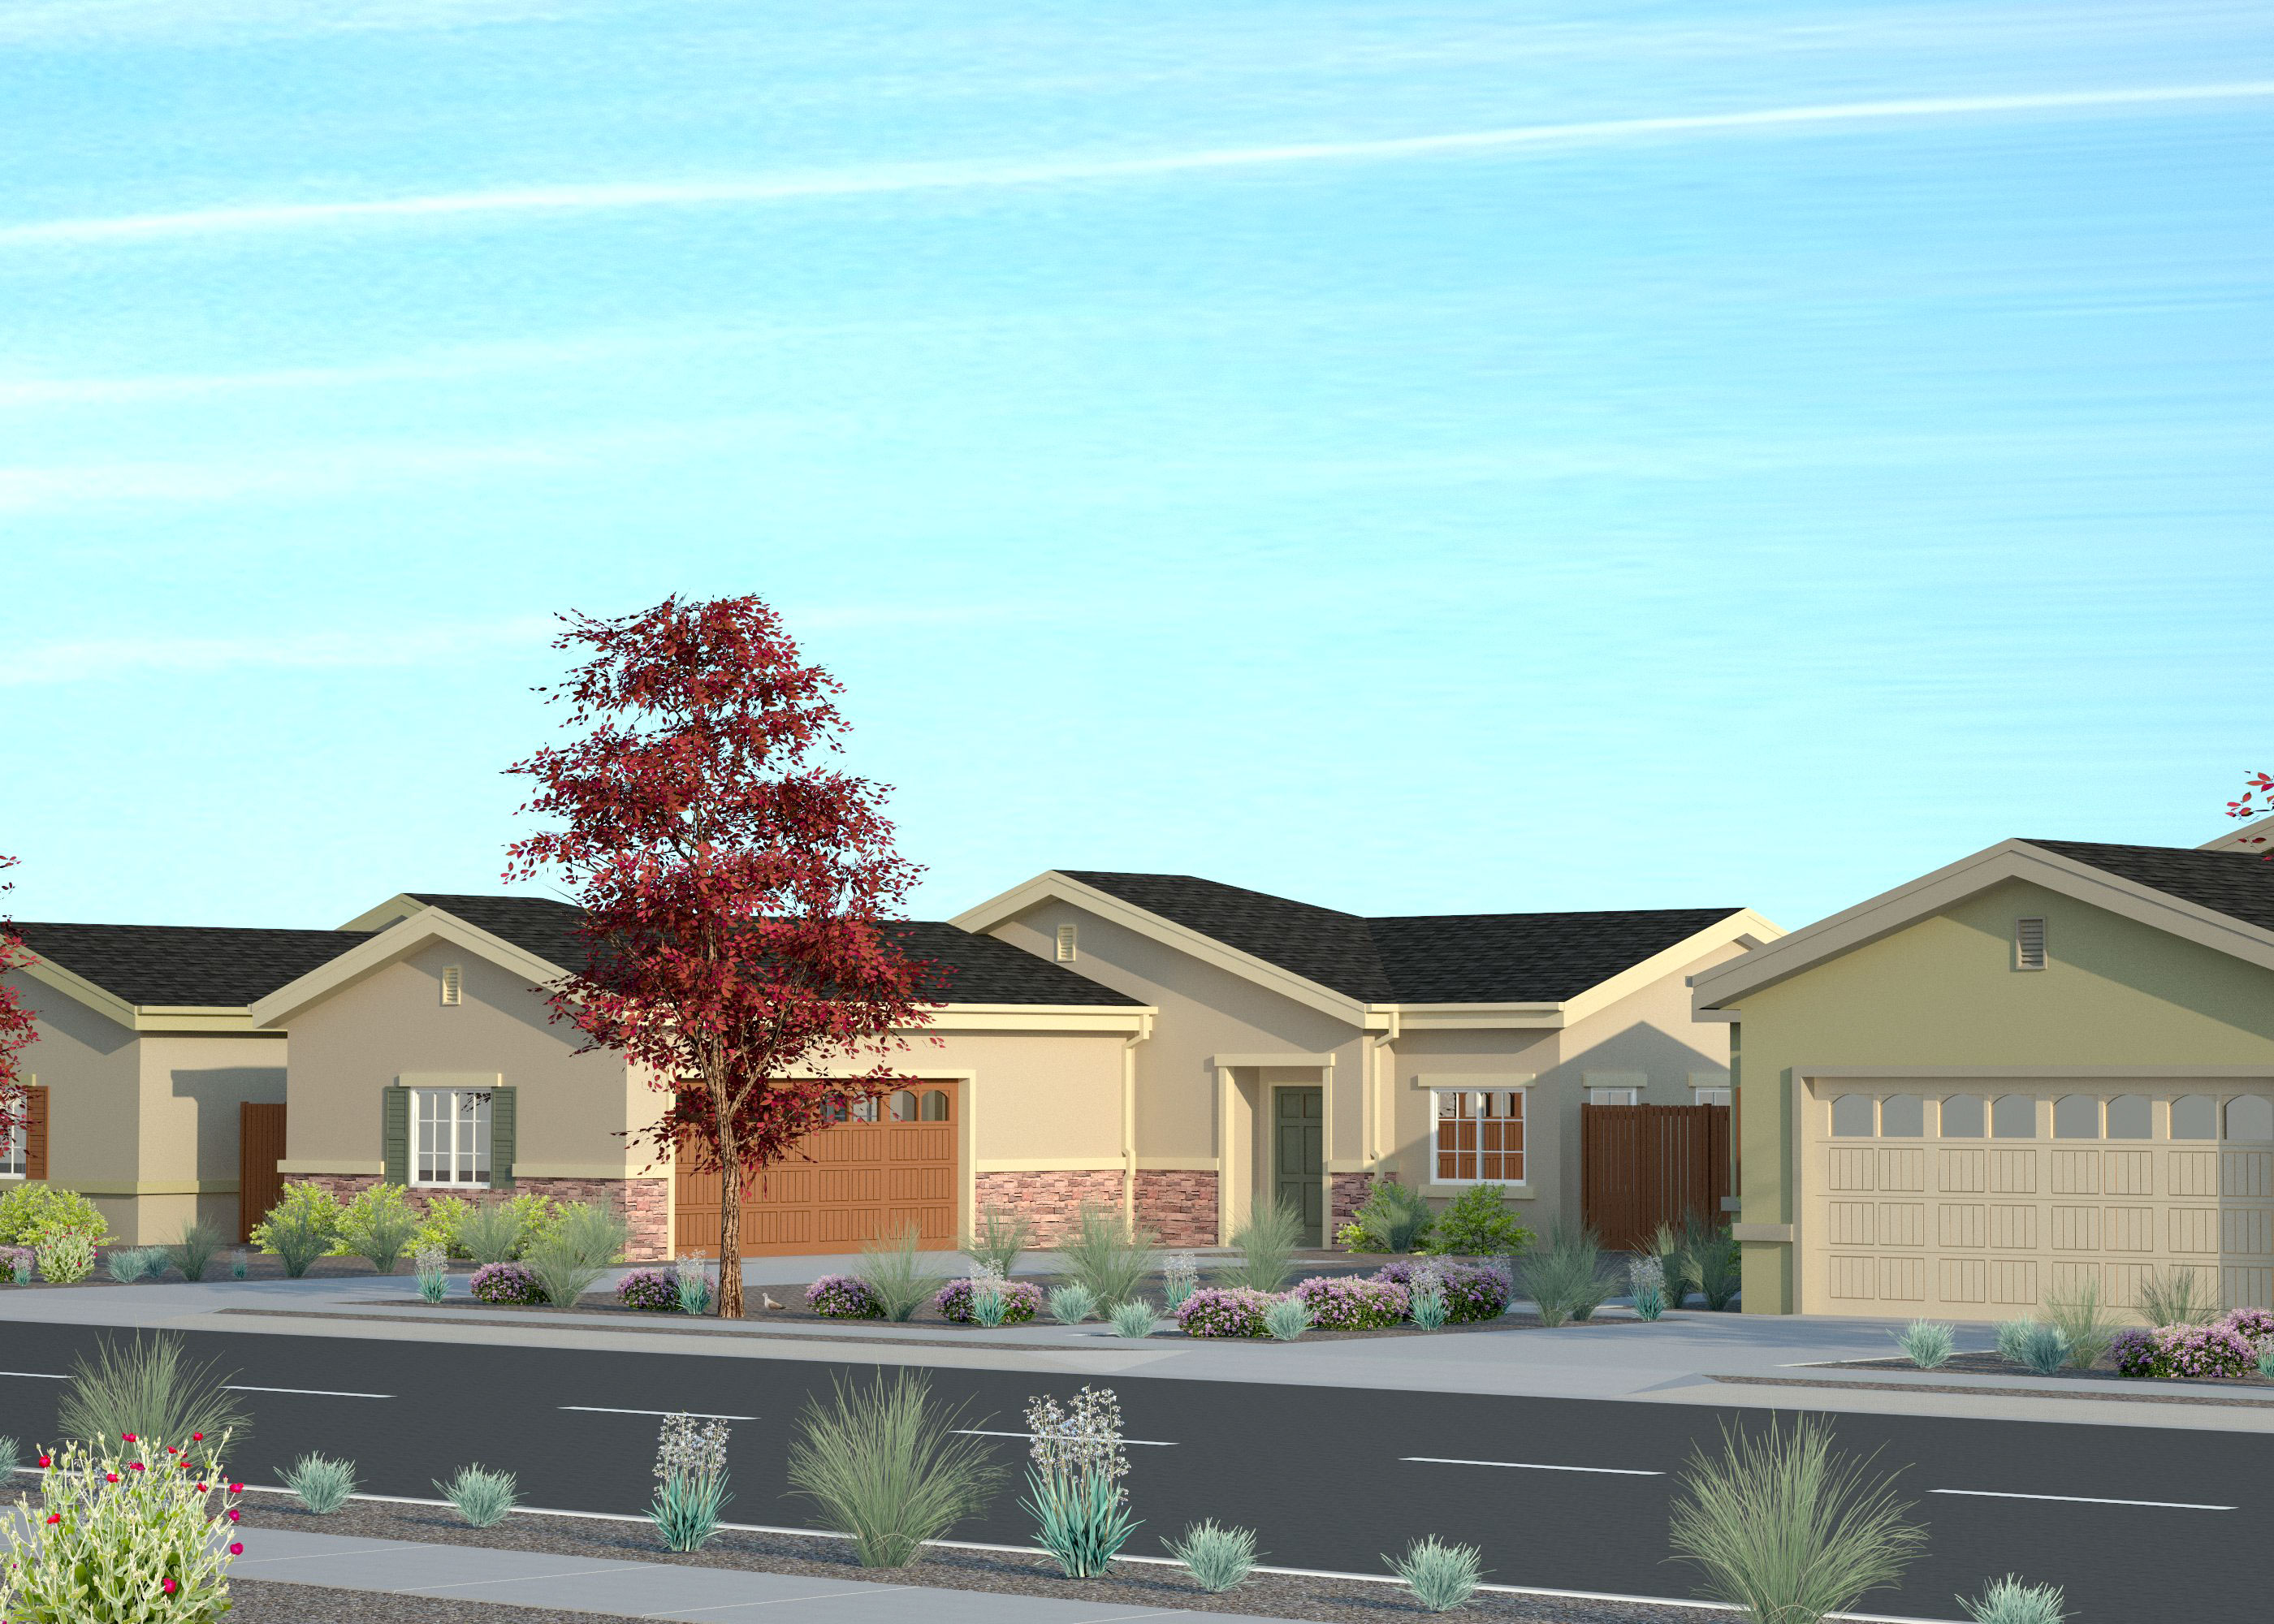 Green Valley Homes, 1006 Golden Valley Drive, Williams, CA